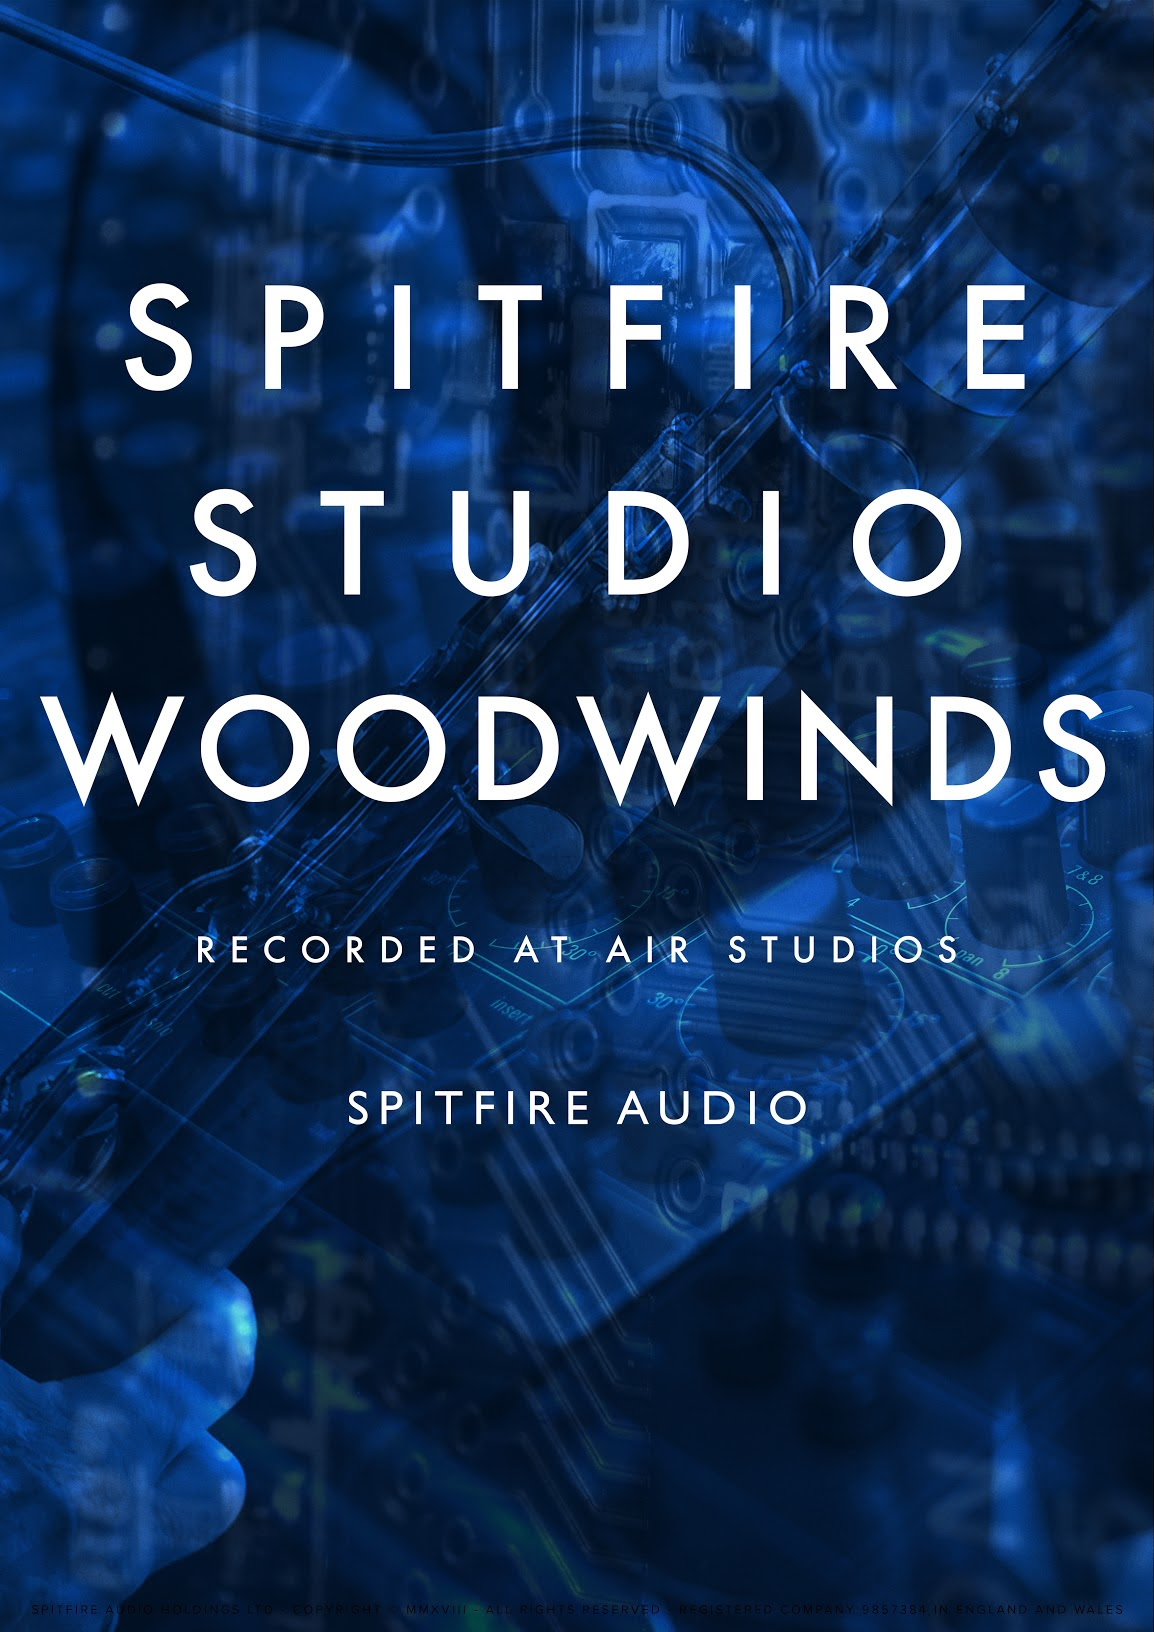 Spitfire Audio accomplishes its indispensable SPITFIRE STUDIO